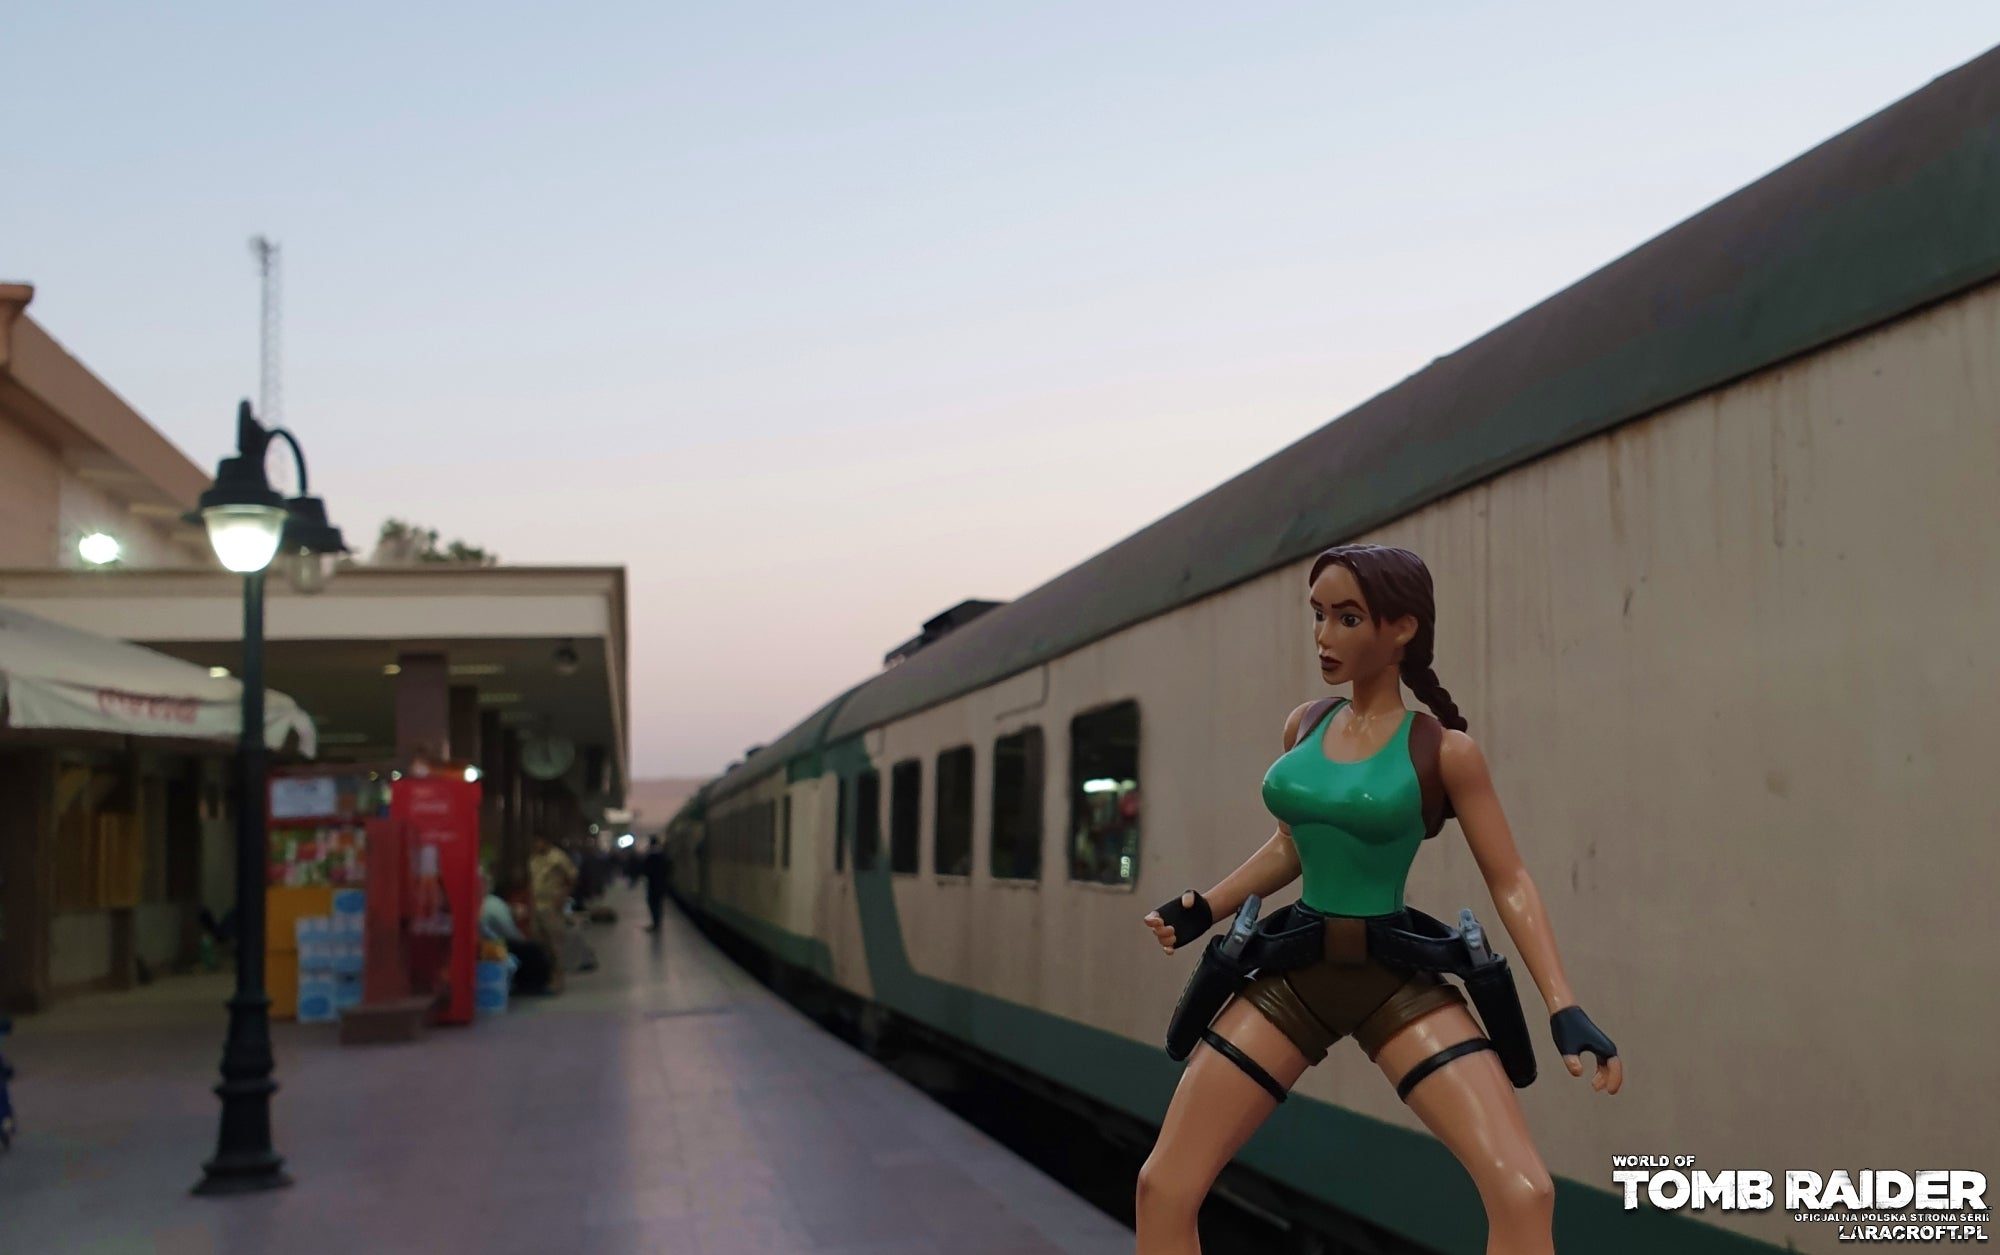 A photograph of a Lara Croft figure in front of a desert railroad in Egypt